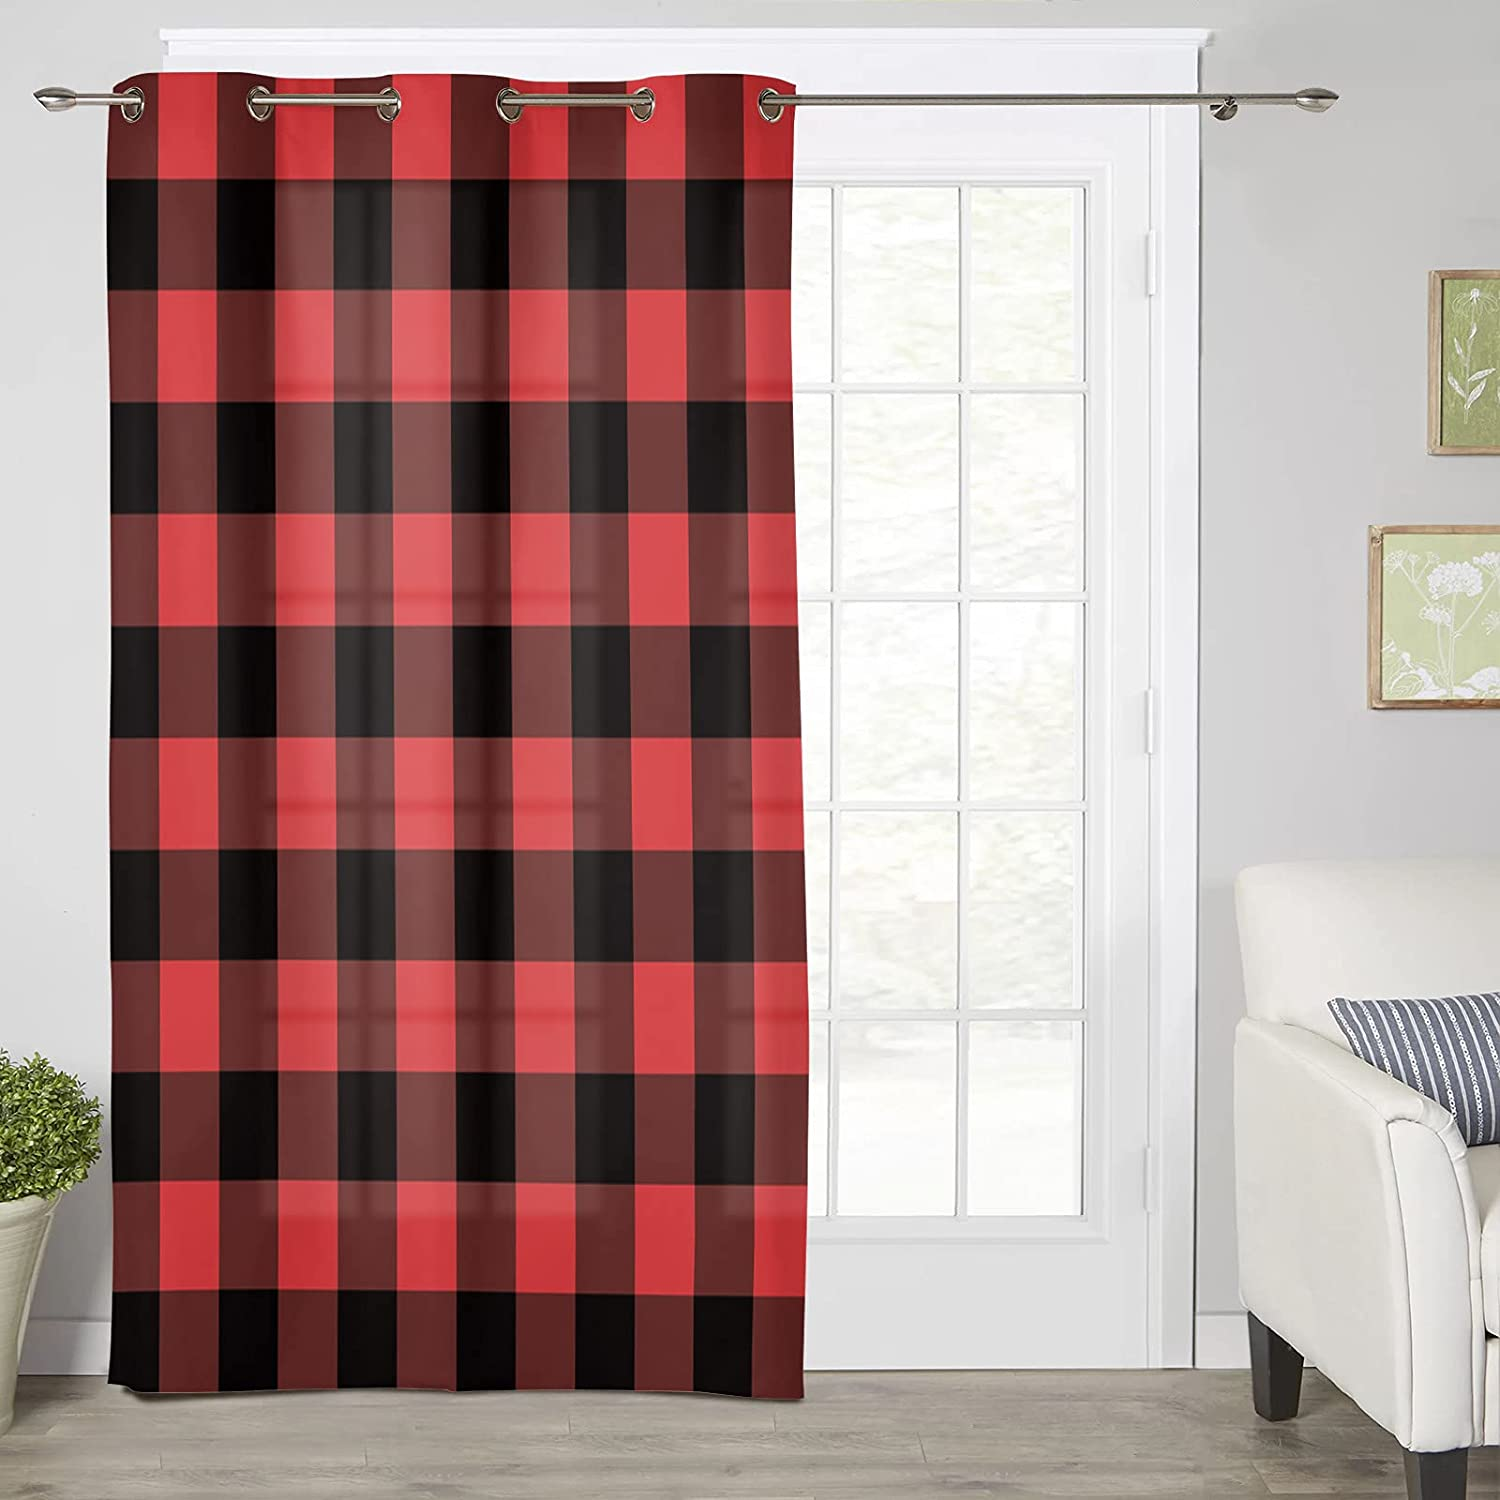 Clearance SALE! Limited time! Grommet Quantity limited Top Curtain Panels Red Buffalo Plaid and Black Noise